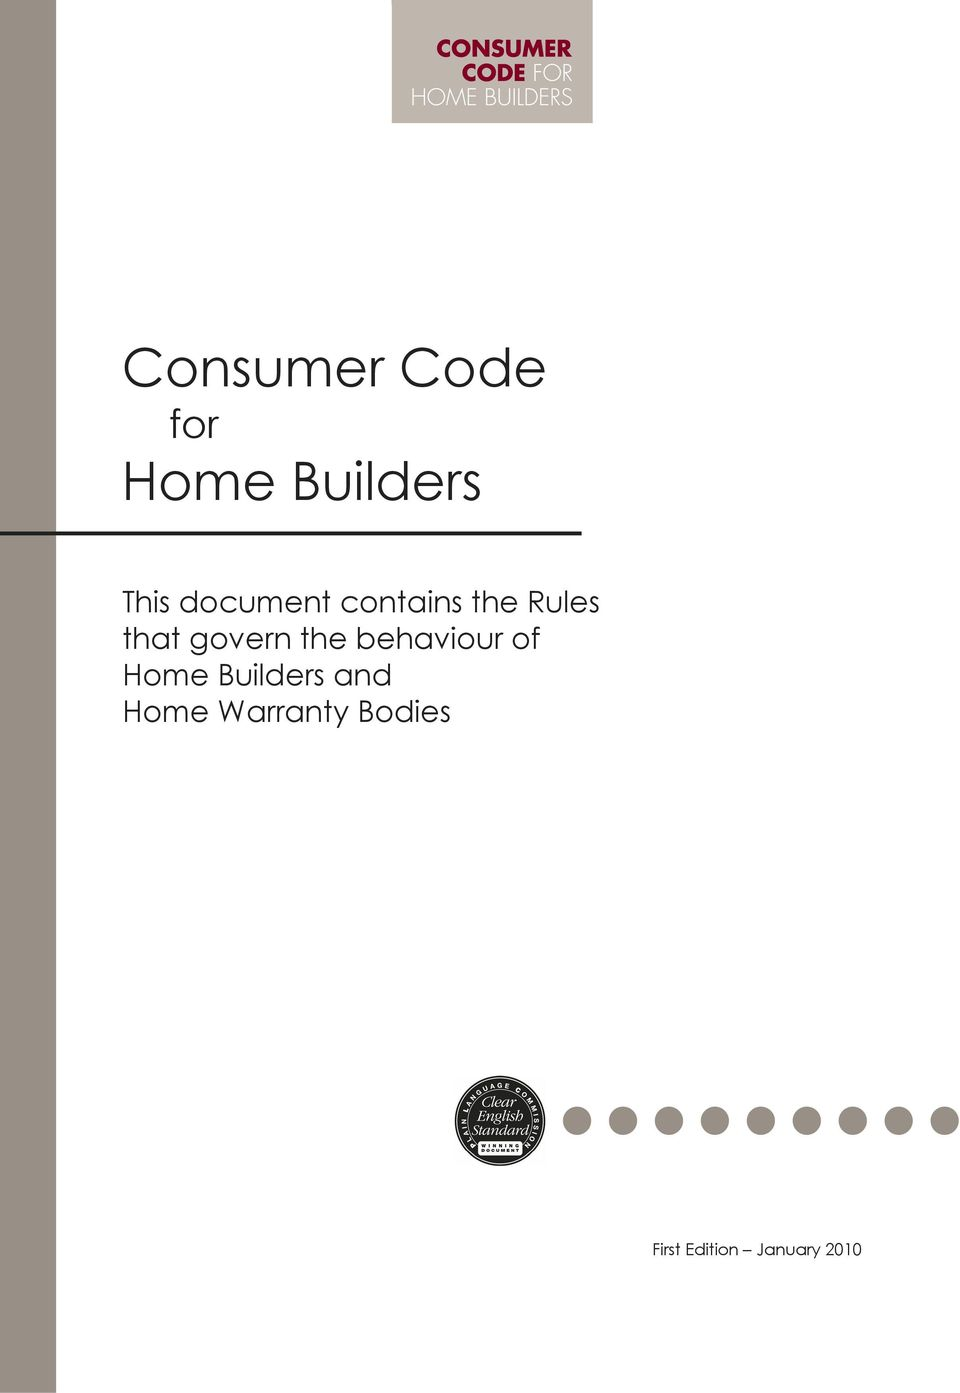 the behaviour of Home Builders and Home